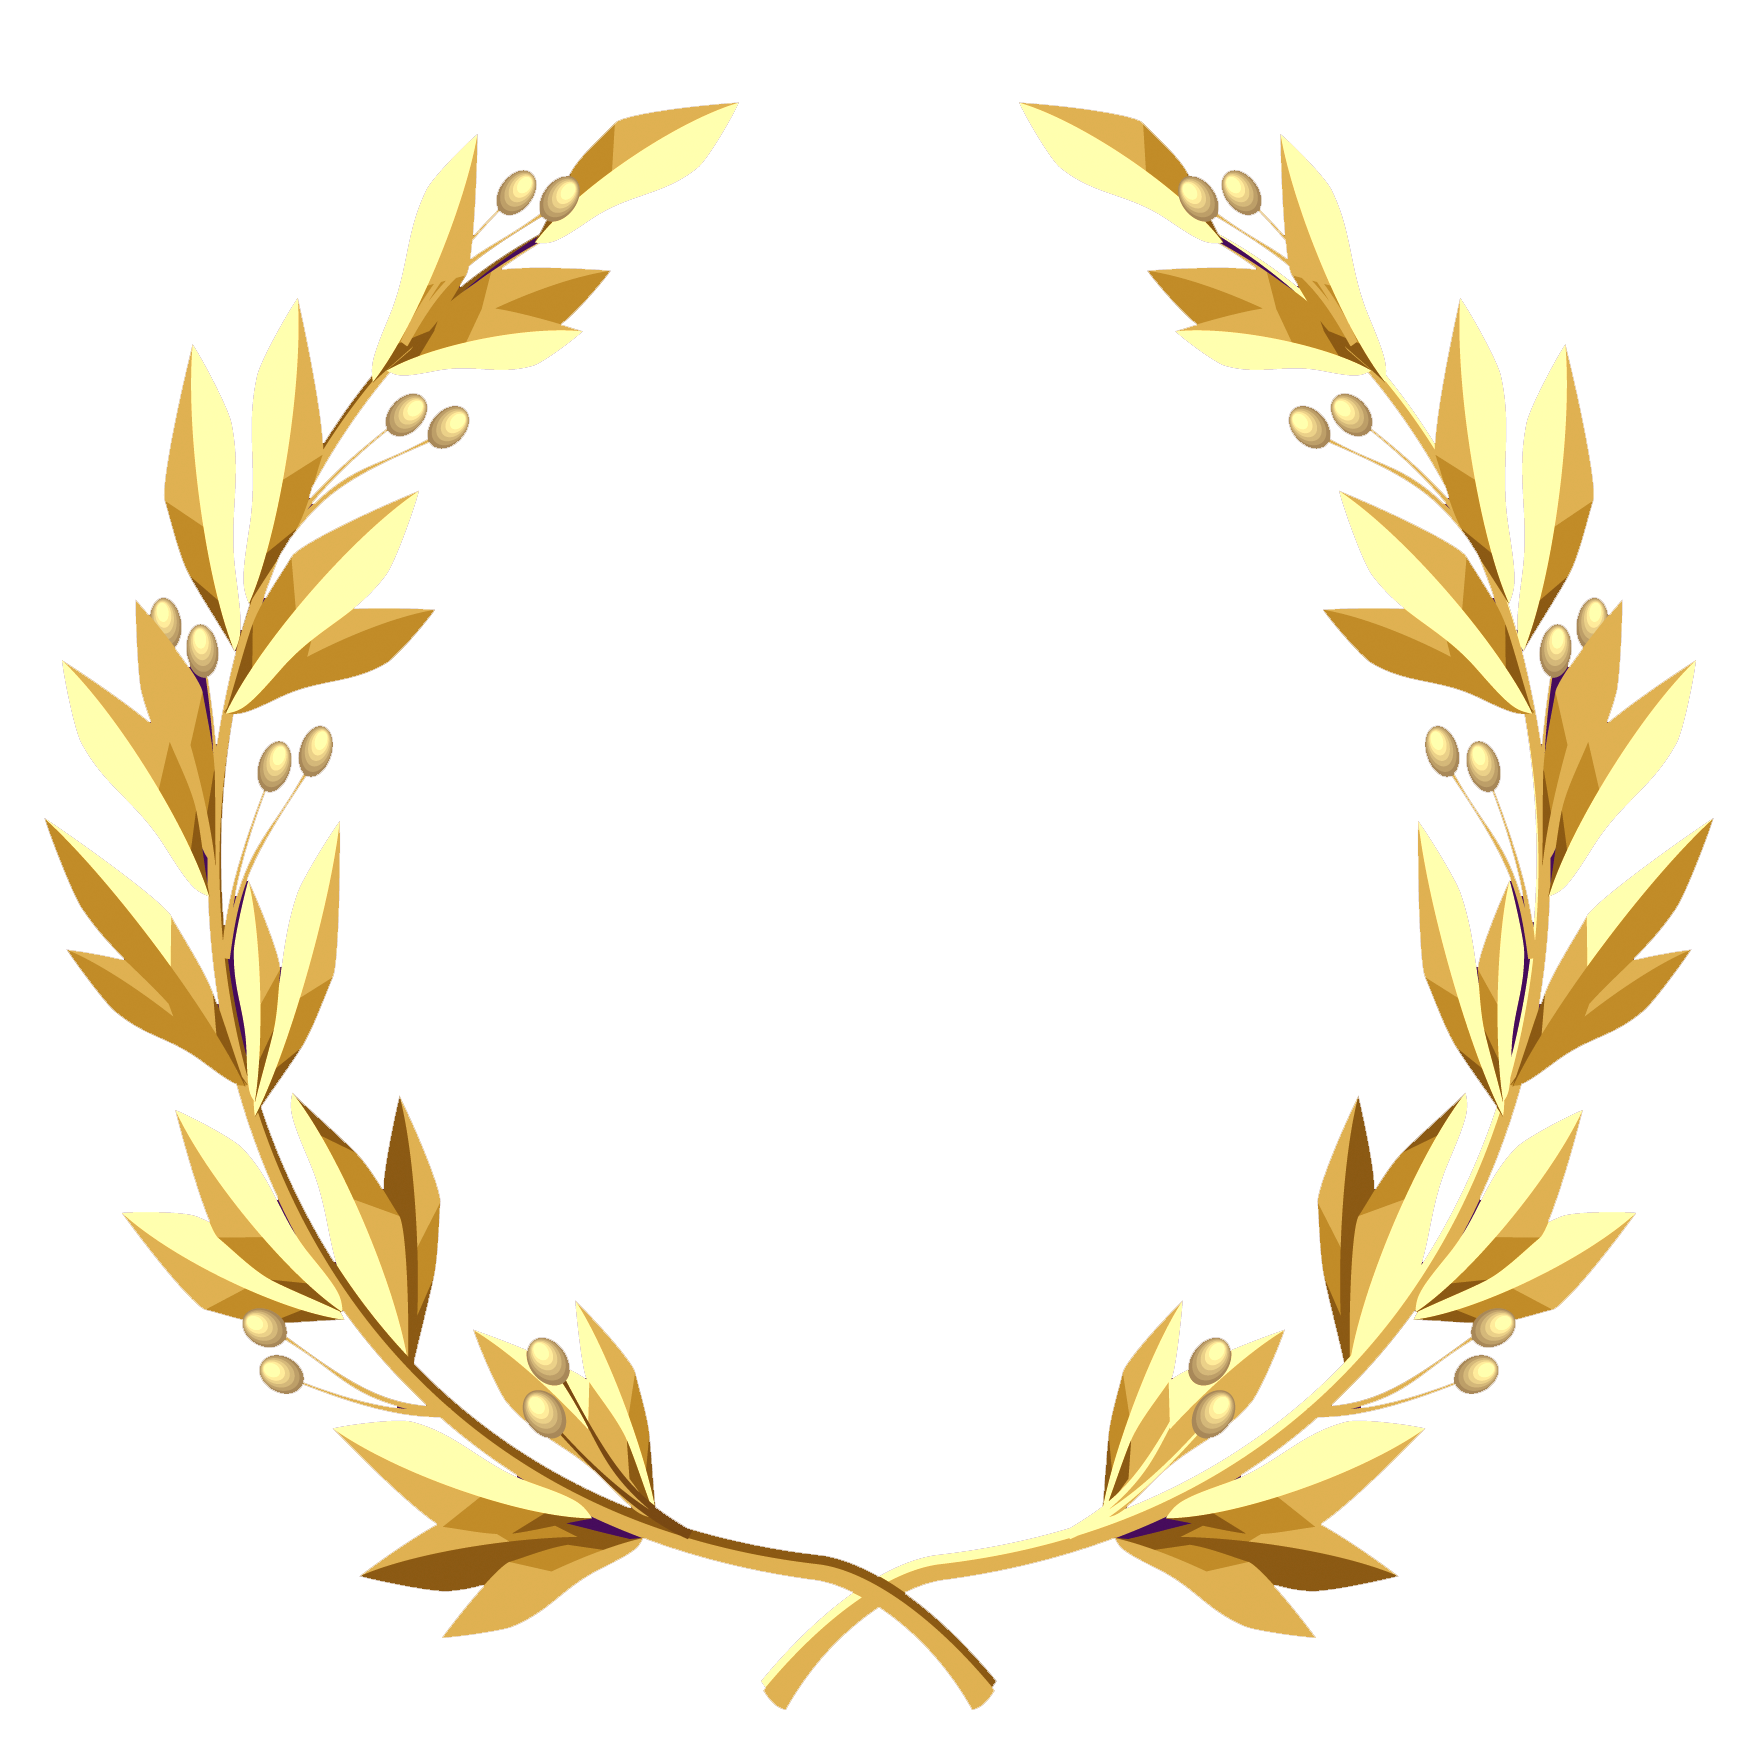 Laurel crown black and white clipart image free library Transparent Gold Wreath PNG Clipart Picture | картинки | Pinterest ... image free library